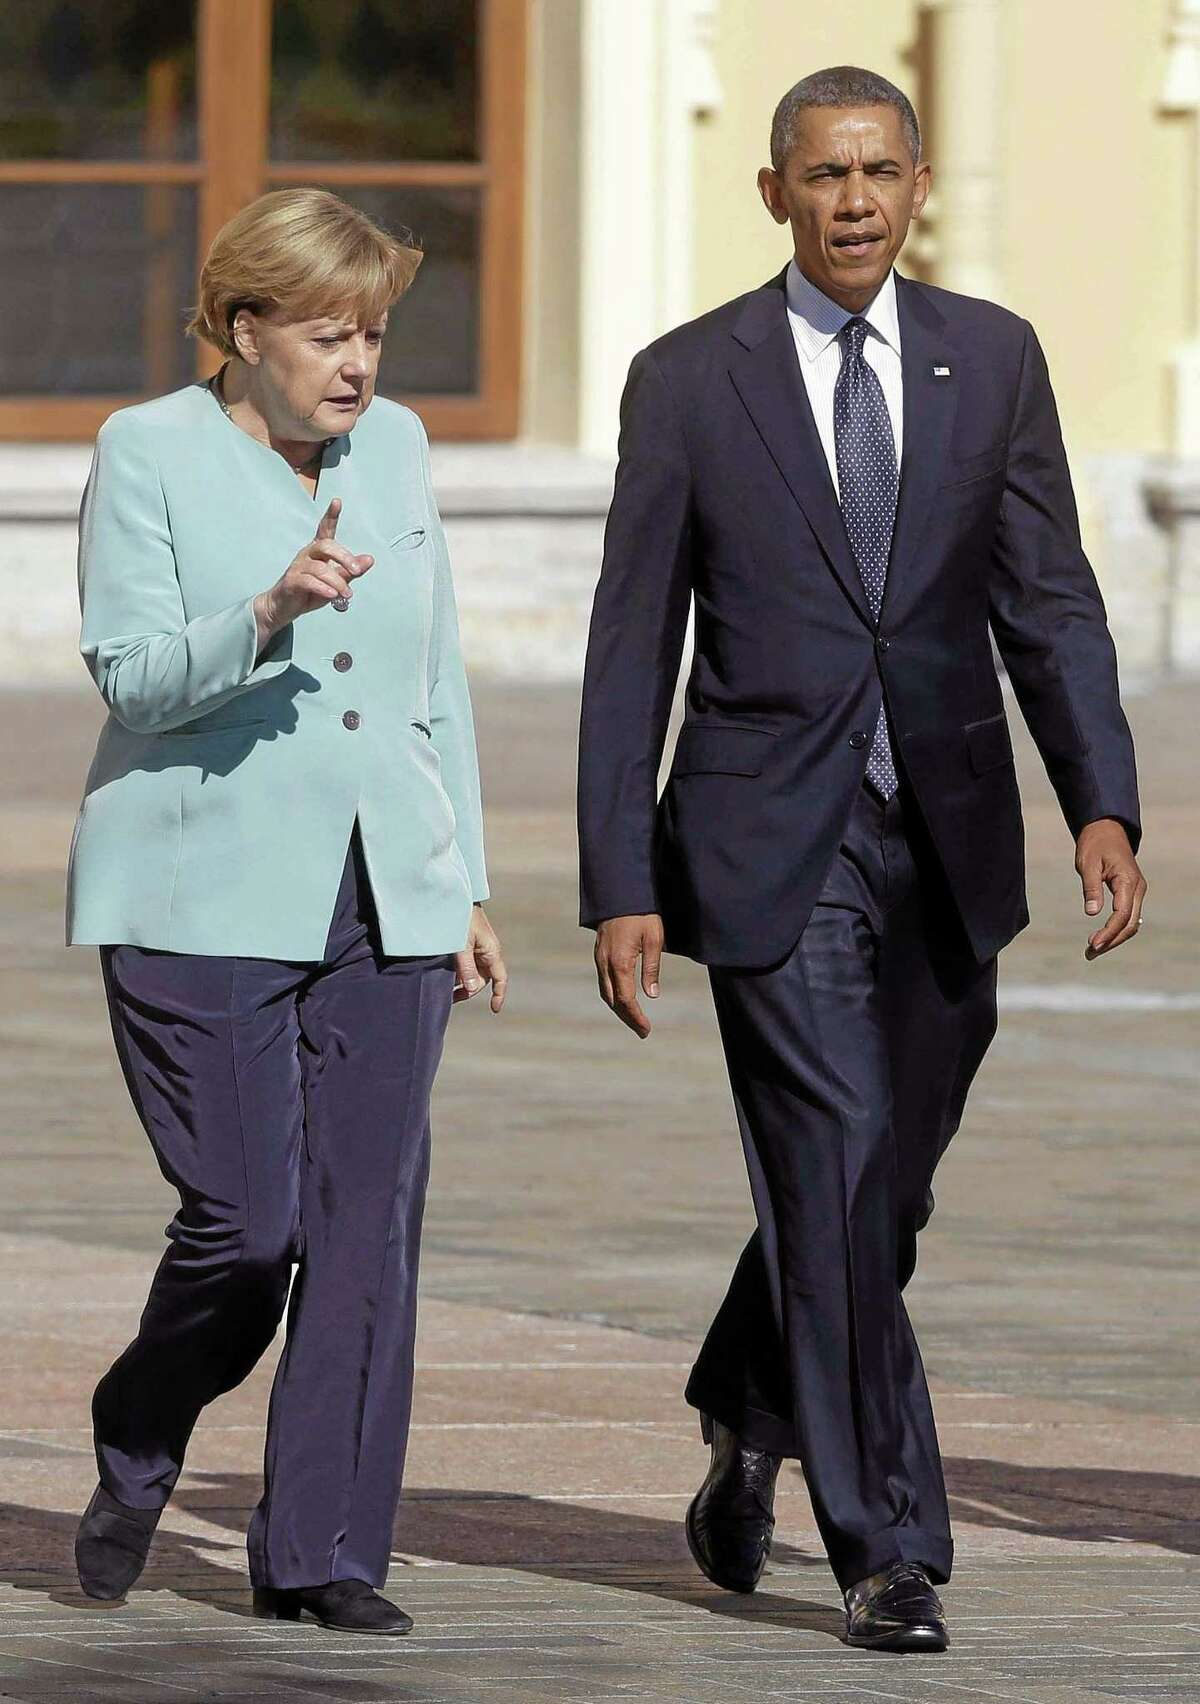 FILE - In this Sept. 6, 2013 file photo, President Barack Obama walks with German Chancellor Angela Merkel prior to the group photo at the G-20 summit at the Konstantin Palace in St. Petersburg, Russia. It was a moment for Barack Obama to savor. His second inaugural address over, Obama paused as he strode from the podium last January, turning back for one last glance across the expanse of the National Mall, where a supportive throng stood in the winter chill to witness the launch of his new term.